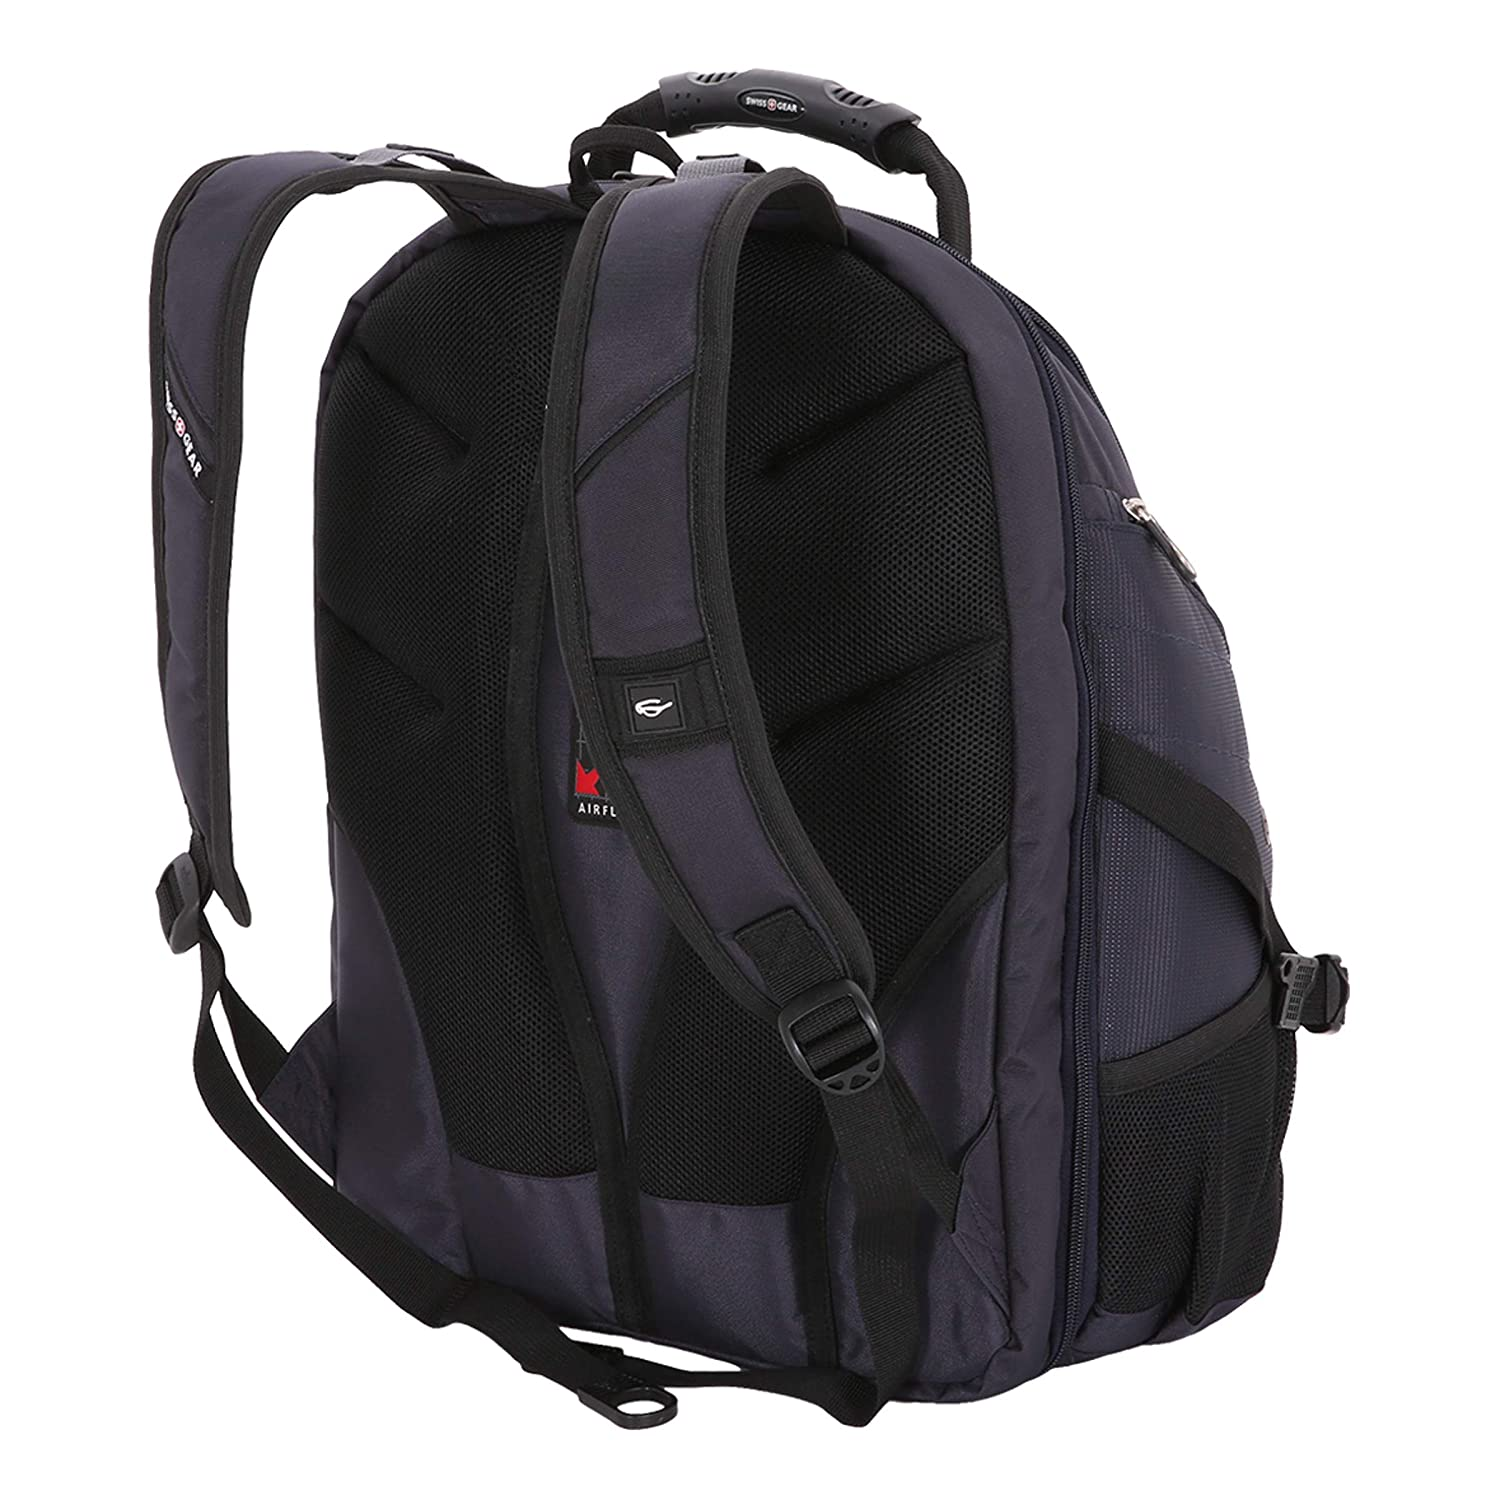 63e1a0118cb8 SwissGear SA1923 Noir Satin TSA Friendly ScanSmart Laptop Backpack - Fits  Most 15 Inch Laptops and Tablets